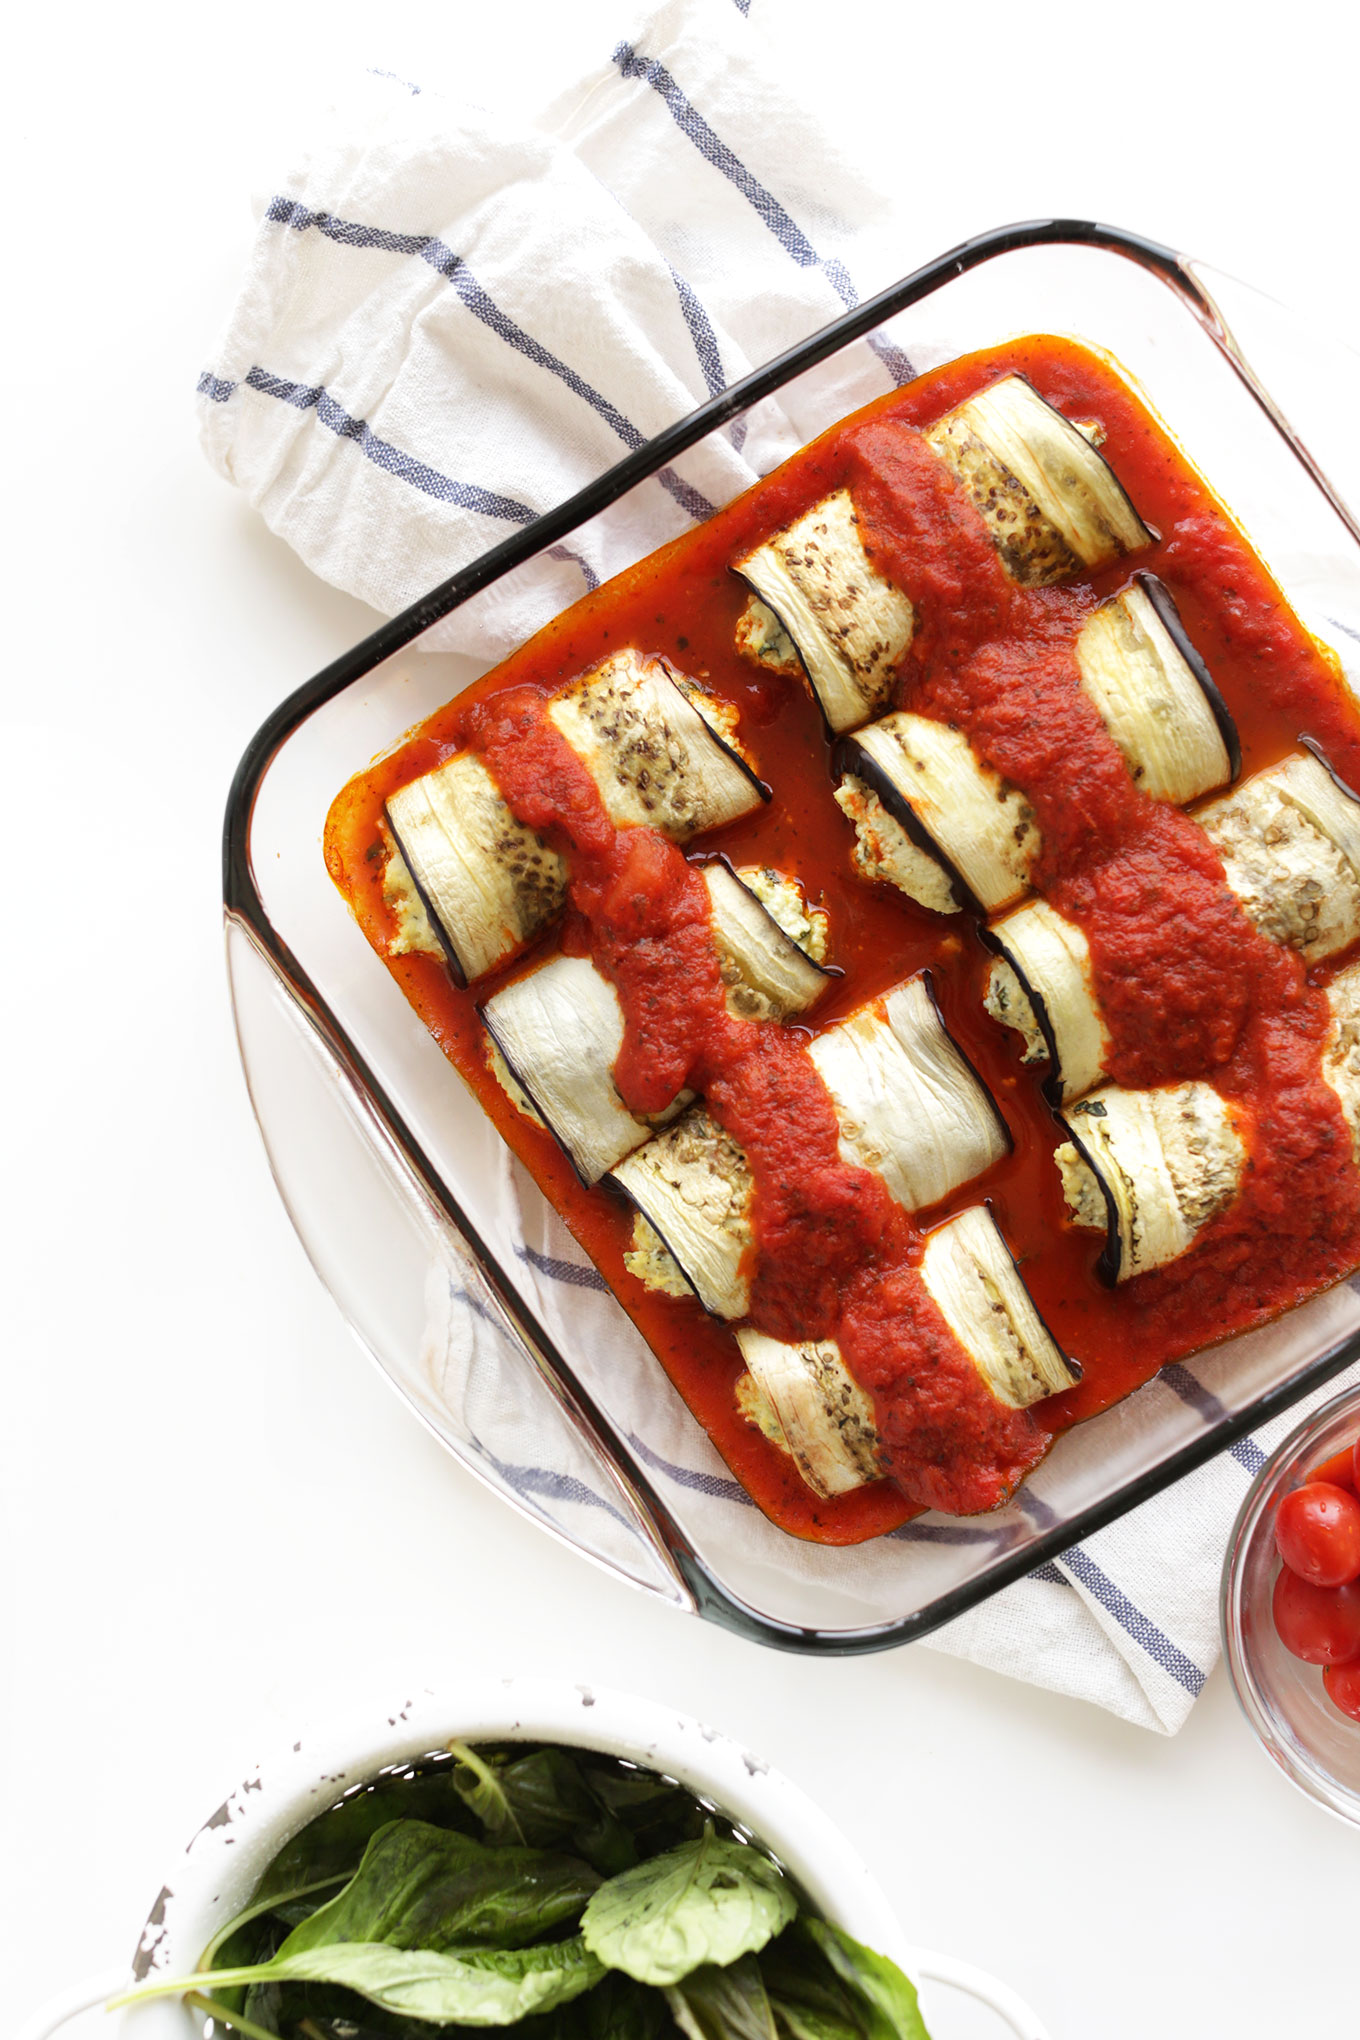 Pan of our healthy gluten-free vegan Eggplant Lasagna Roll-Ups recipe